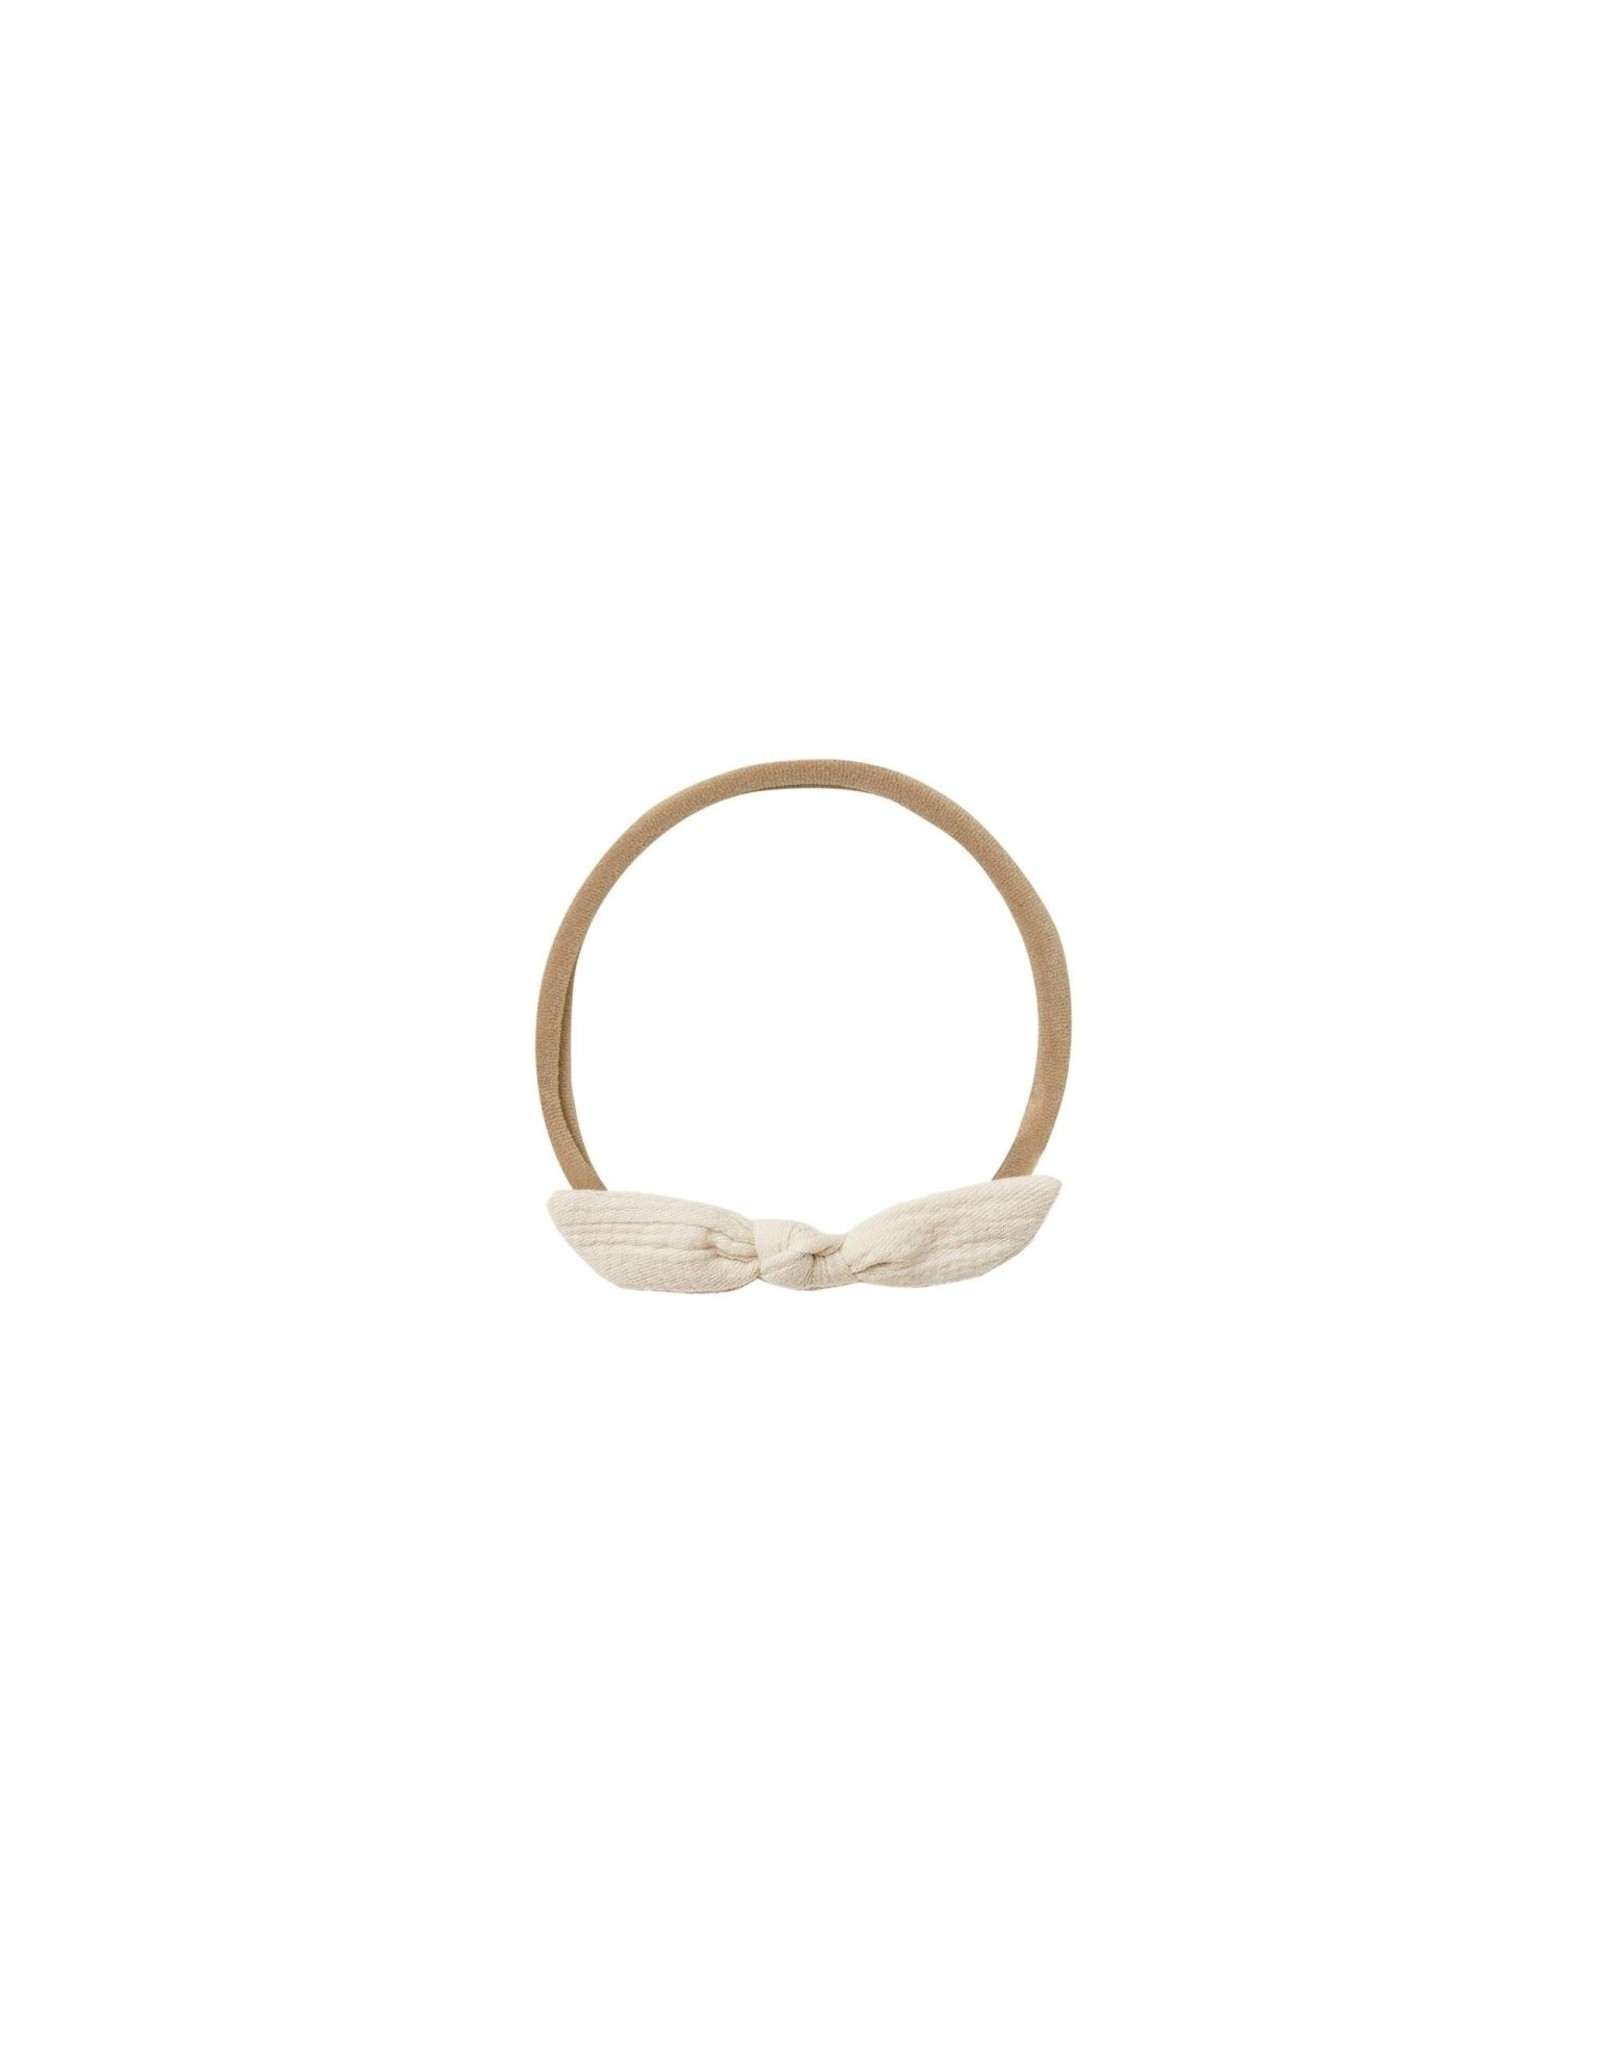 Quincy Mae knot hb- natural